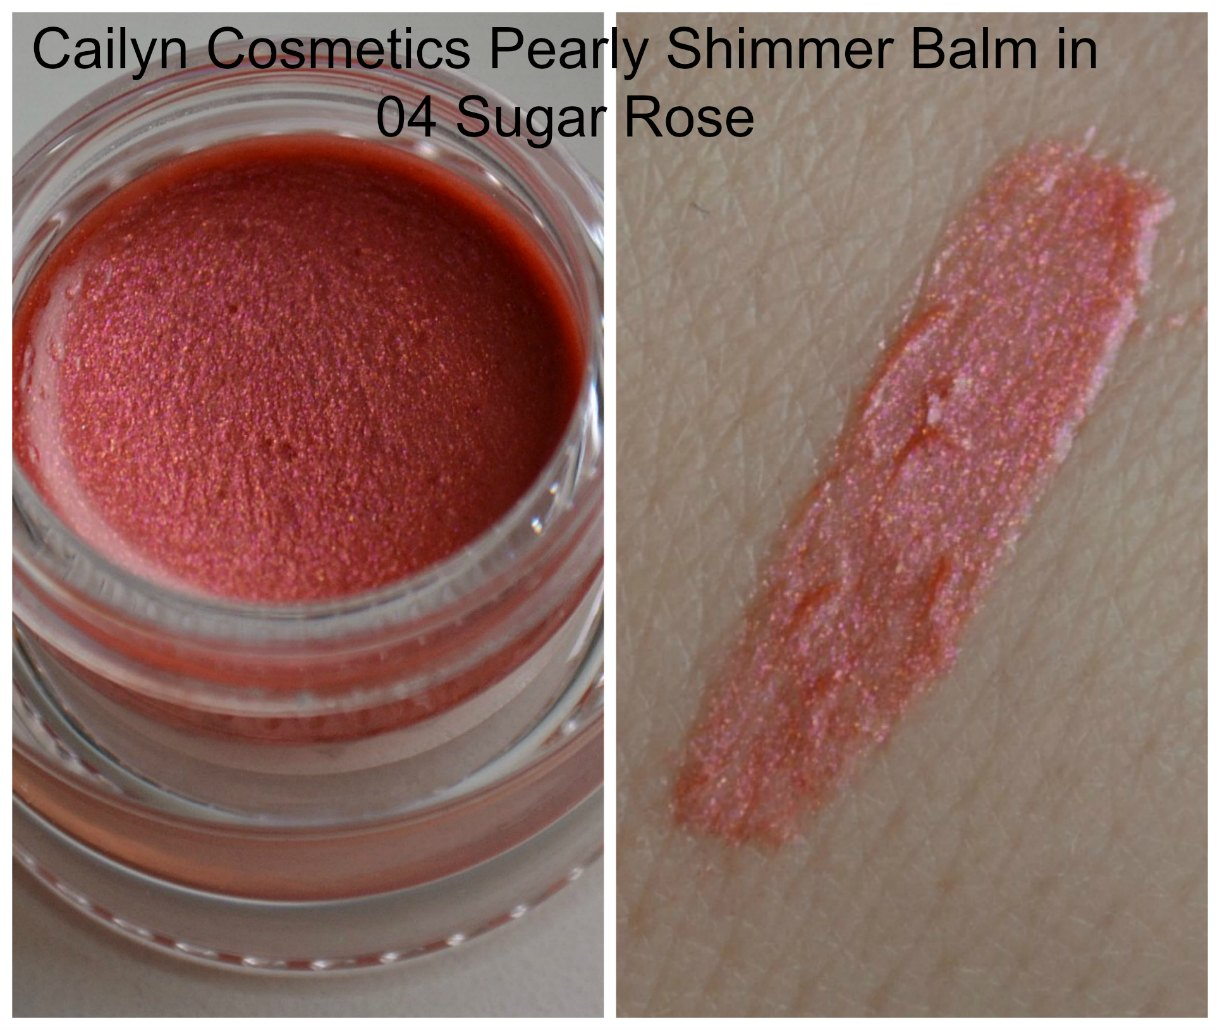 Cailyn Cosmetics Pearly Shimmer Balm in 04 Sugar Rose swatch